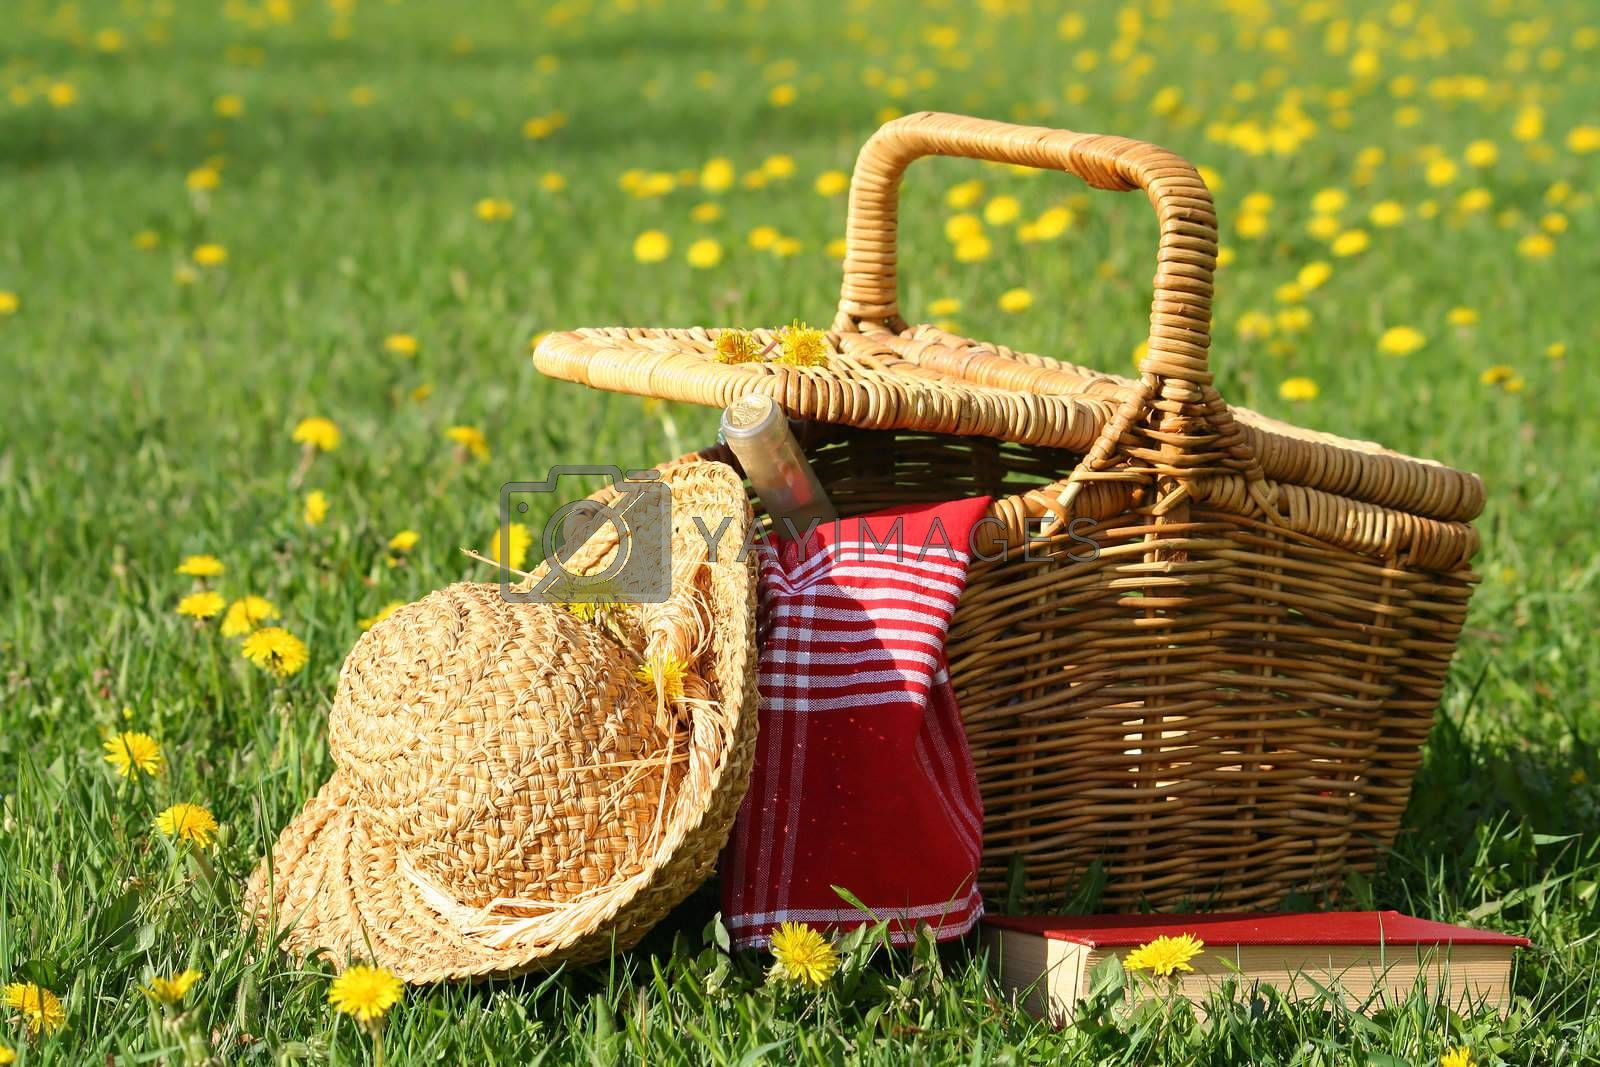 Picnic basket and straw hat laying on the grass